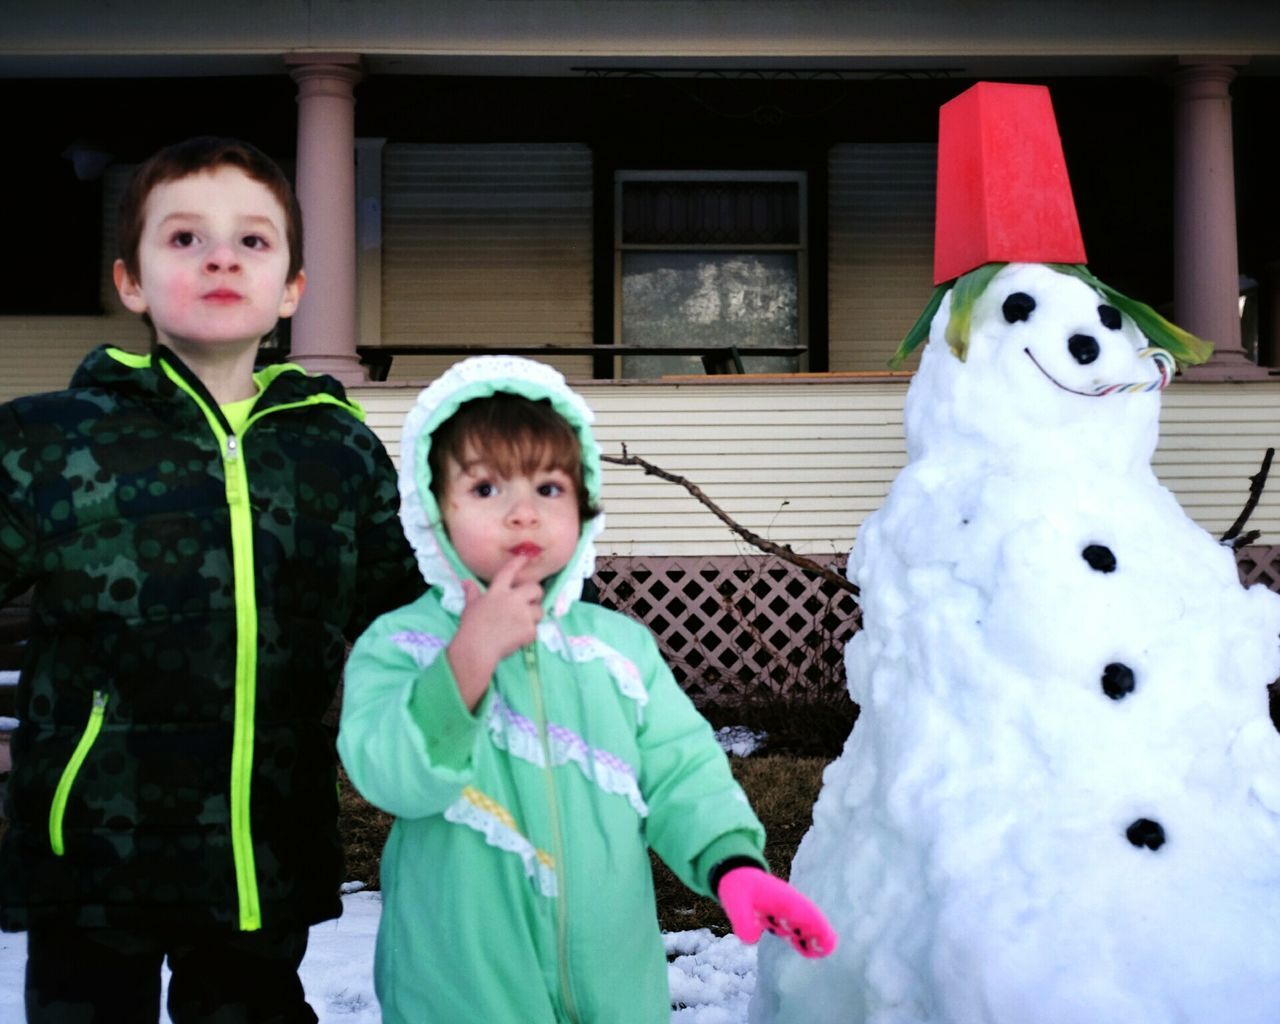 What should we name him? Snowman Kids Being Kids Enjoying Life Havingfun A Day In The Life Snow Today's Hot Look Hello World